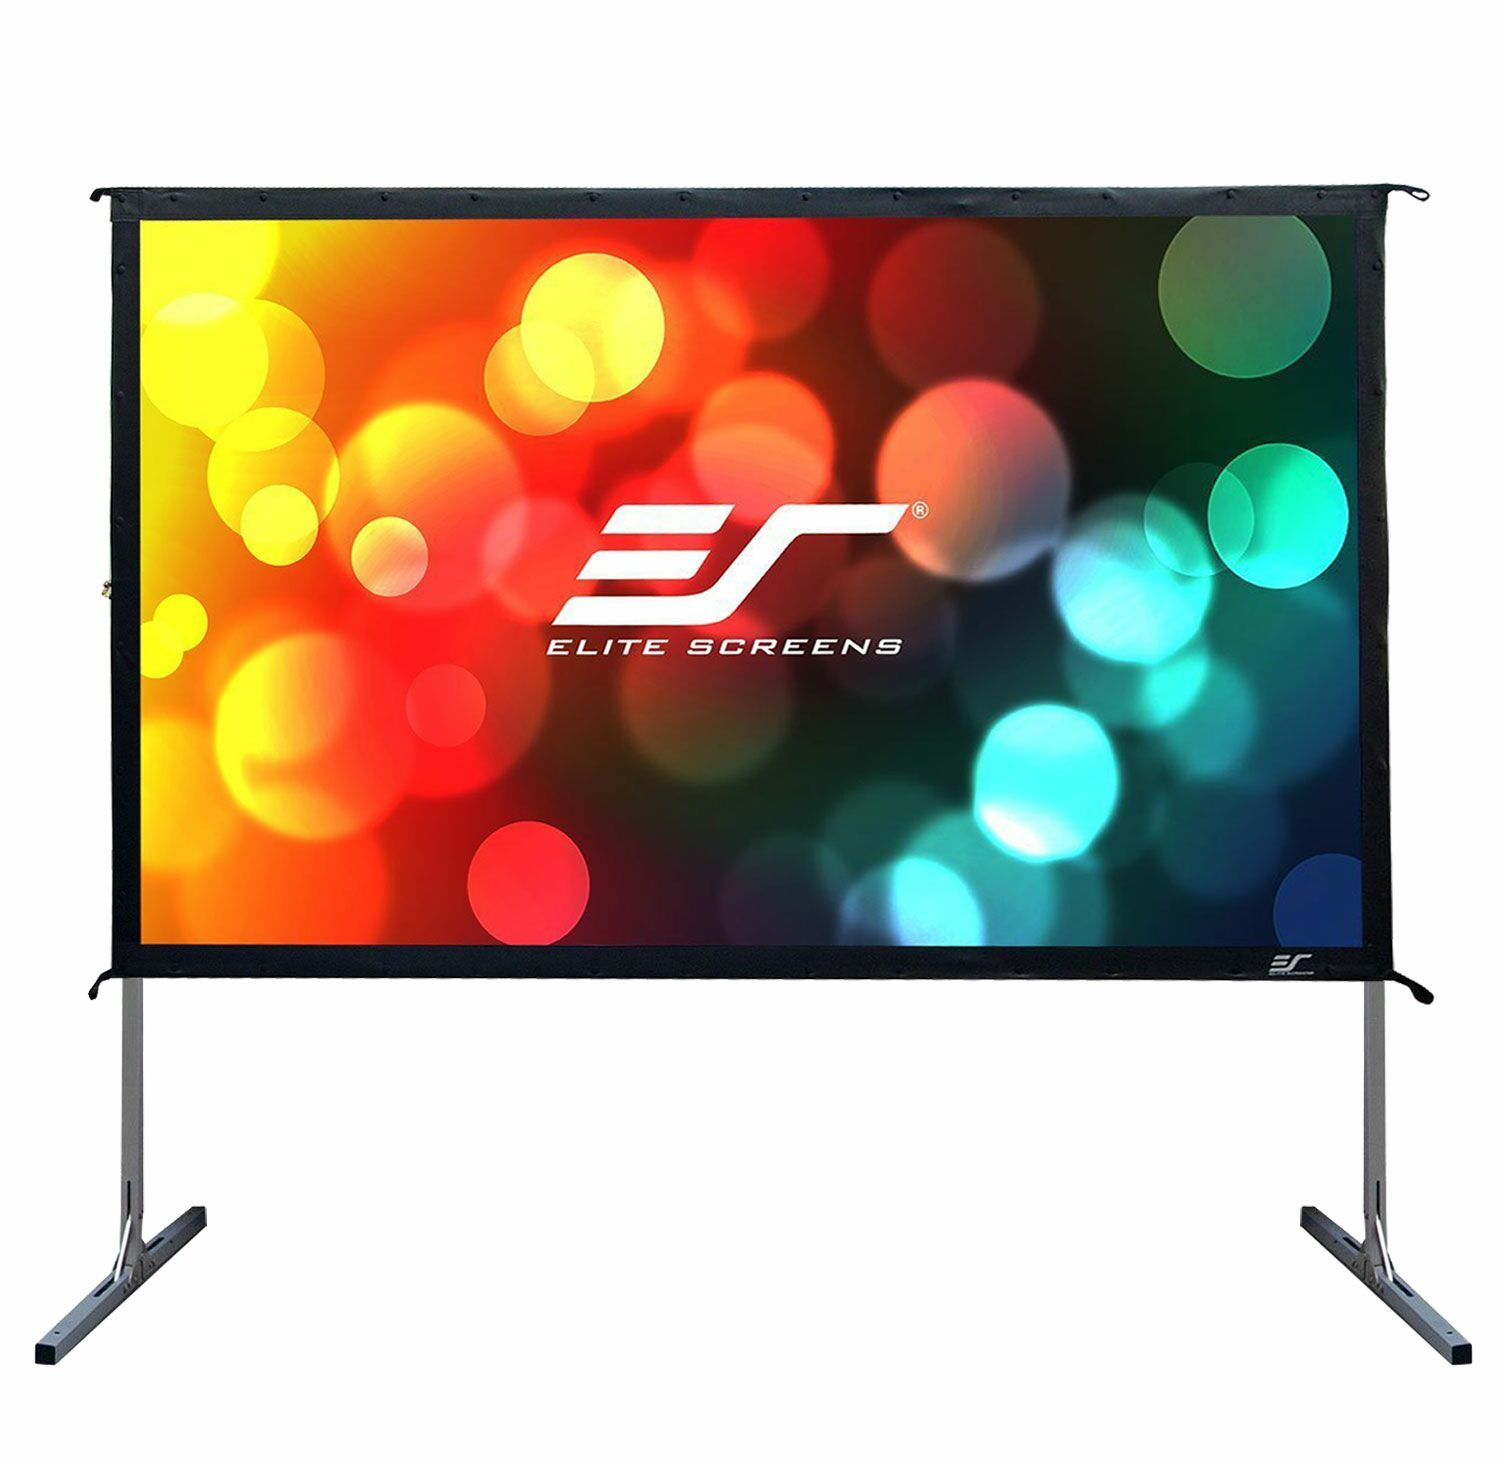 Yard Master 2 Series Portable Projection Screen Viewing Area: 120 Diagonal